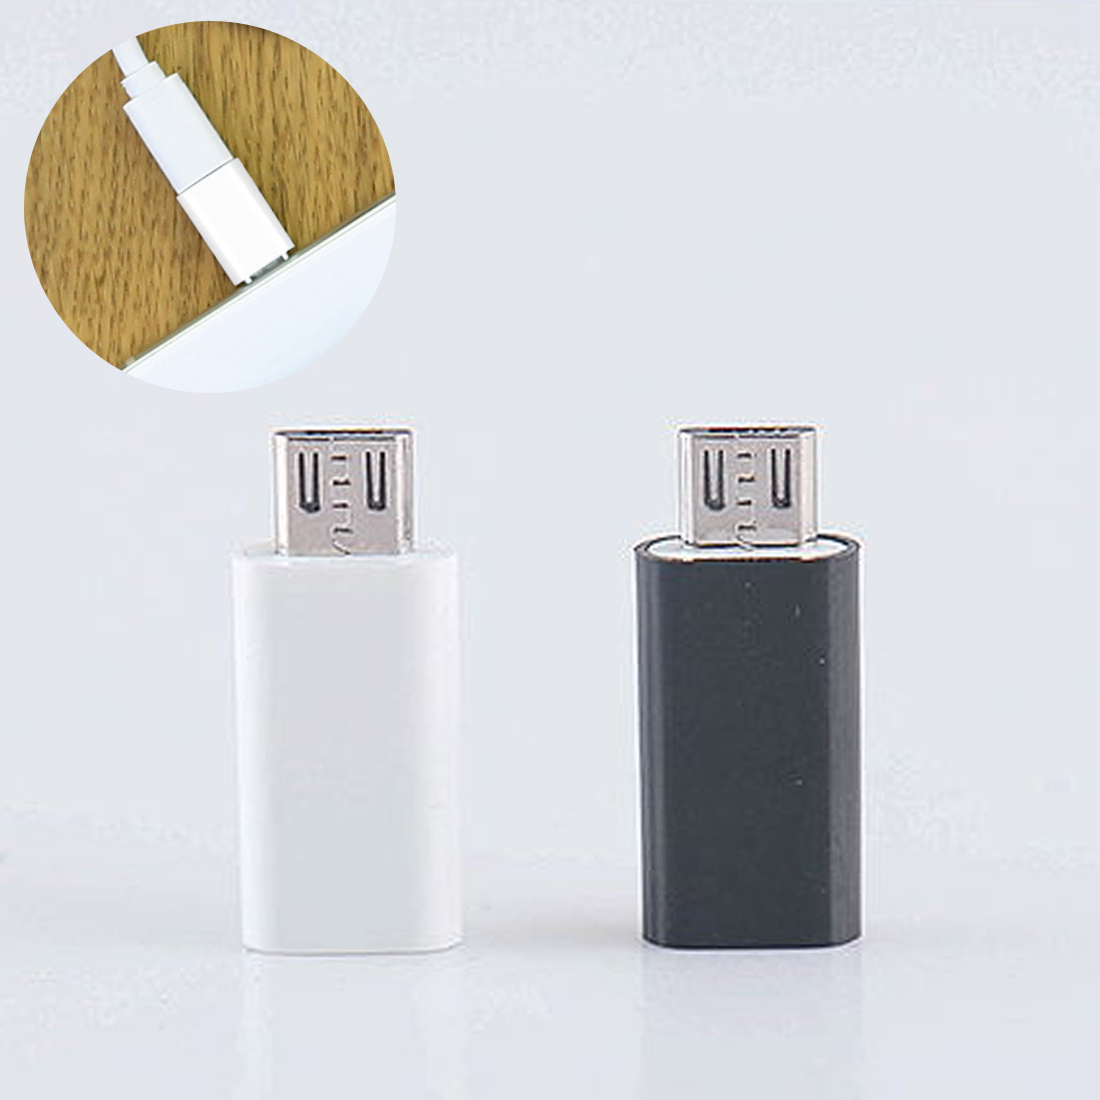 High Speed Type-C Female To Micro USB 2.0 Male USB 3.1 Converter Data Adapter For Phone Tablet PC Android Phone Accessories